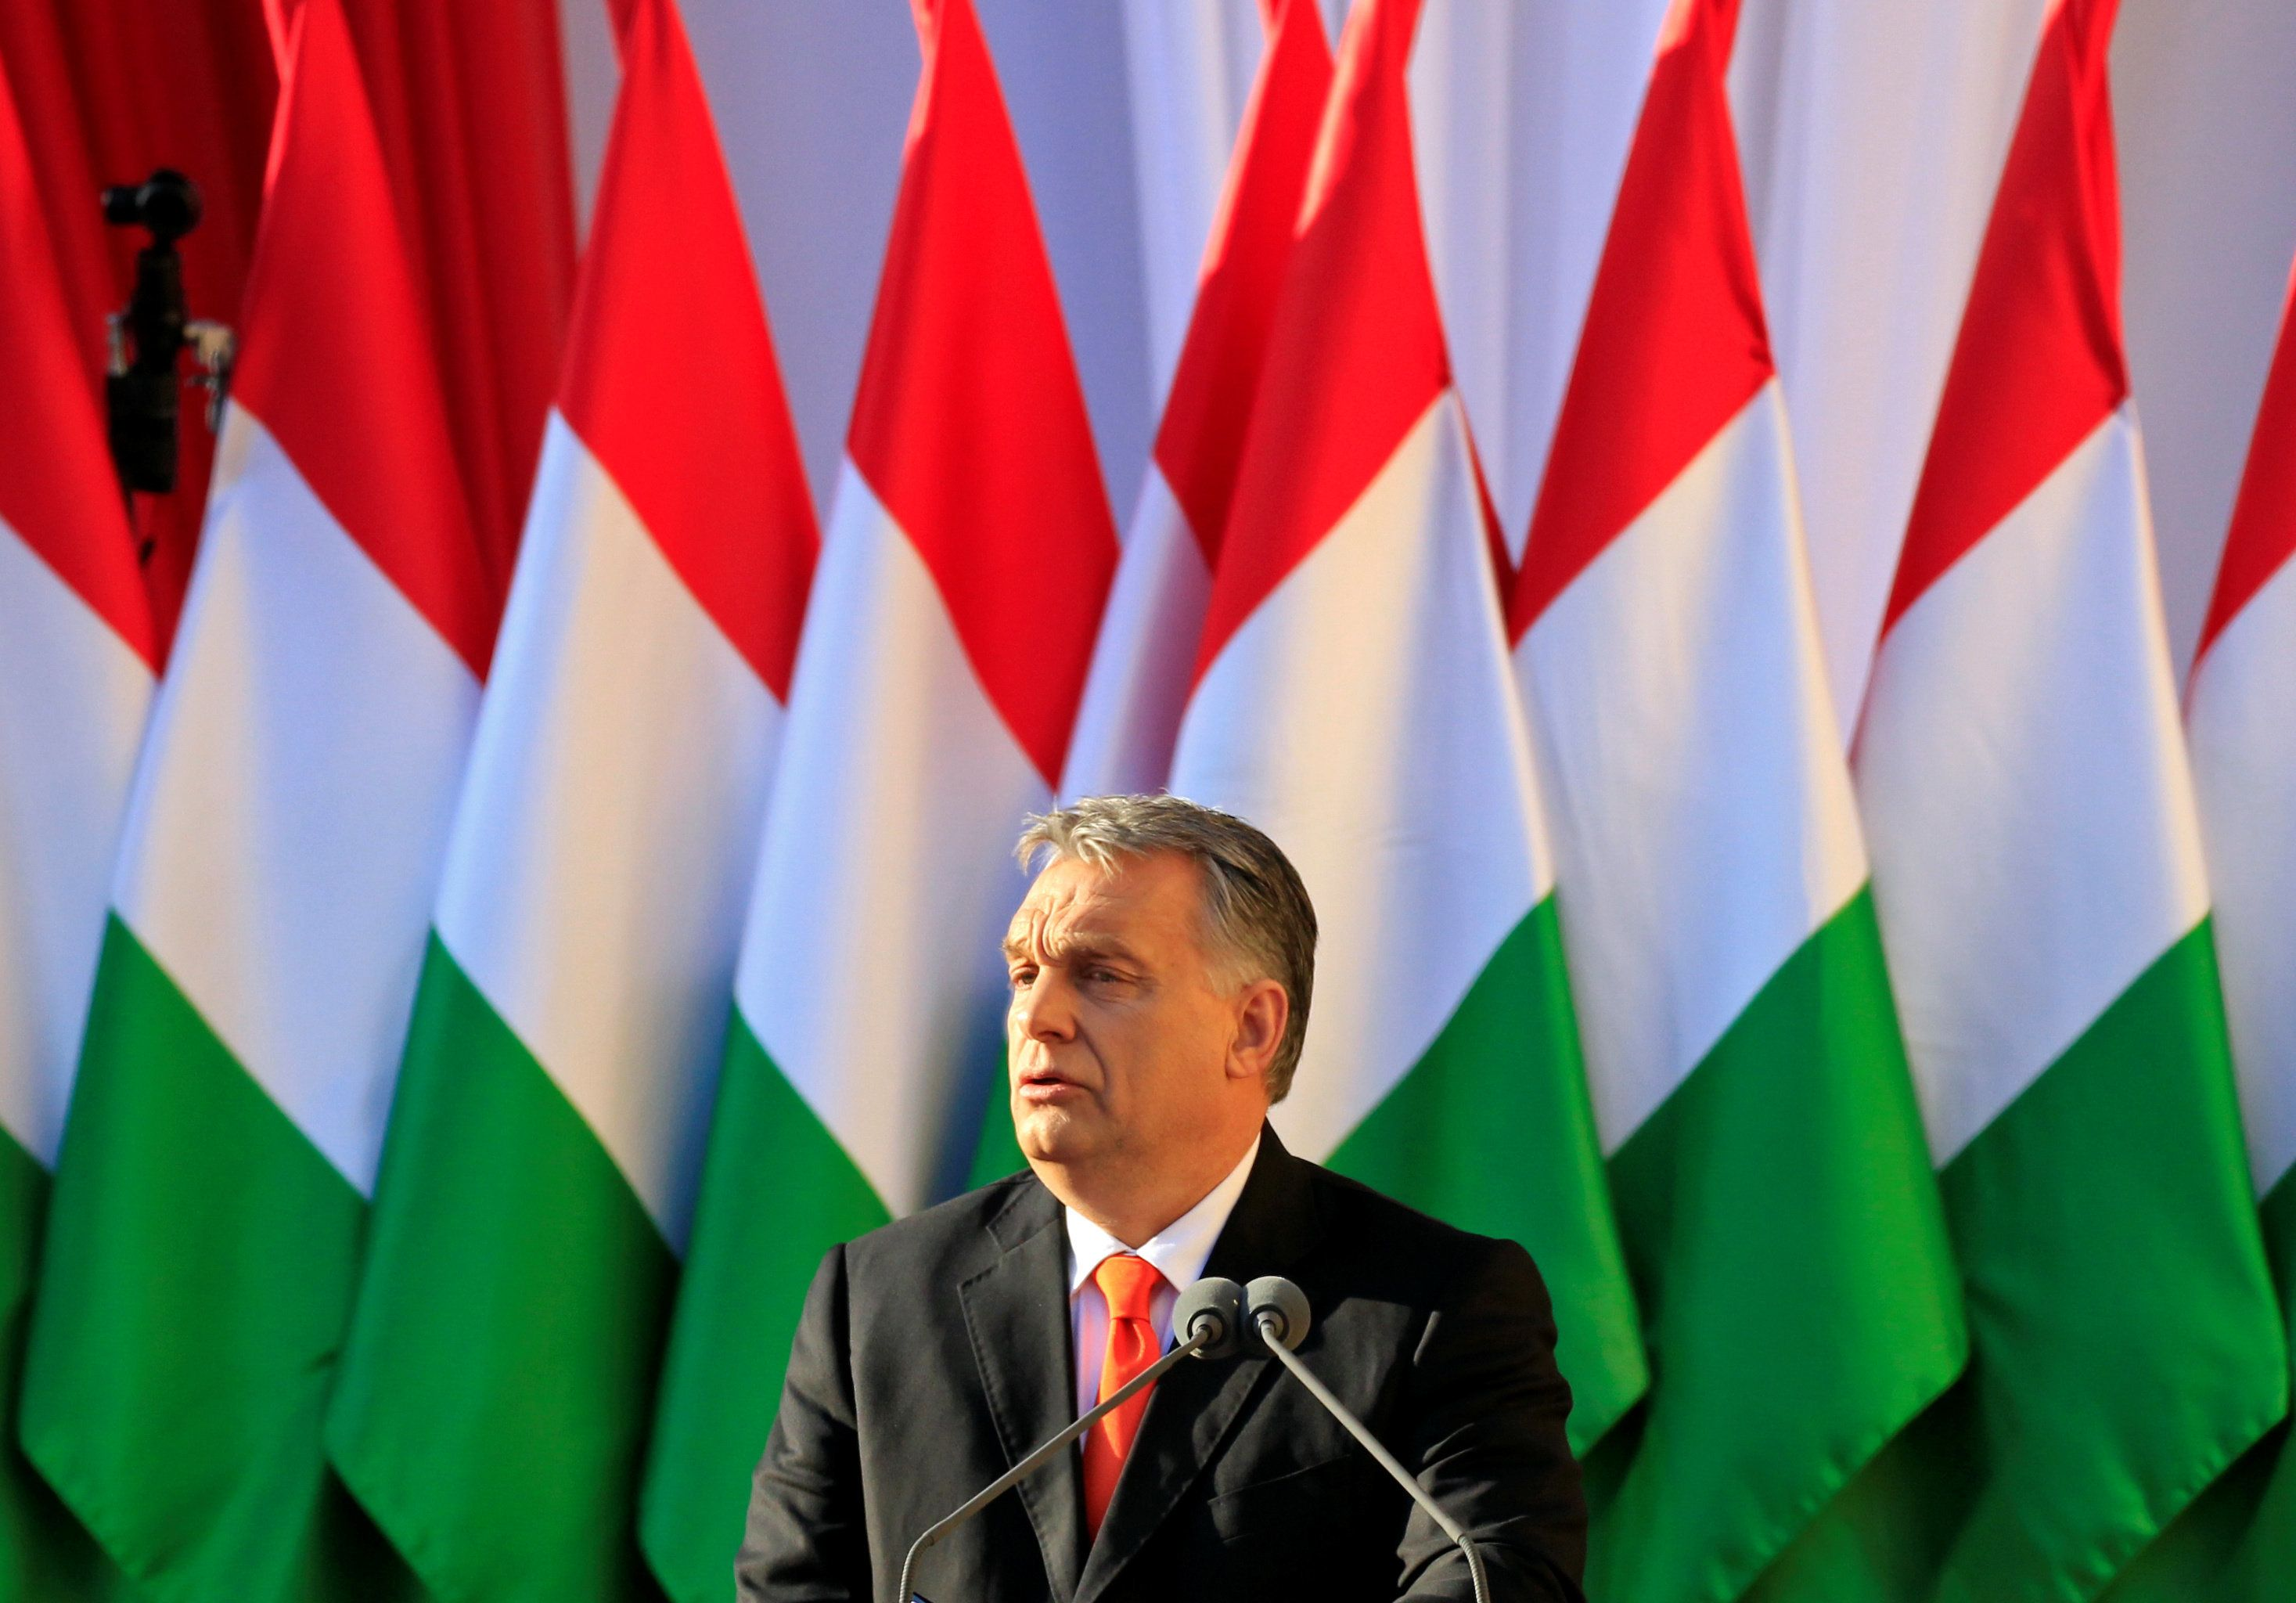 Hungarian Prime Minister Viktor Orban speaks during a campaign closing rally in Szekesfehervar, Hungary, April 6, 2018. REUTERS/Bernadett Szabo